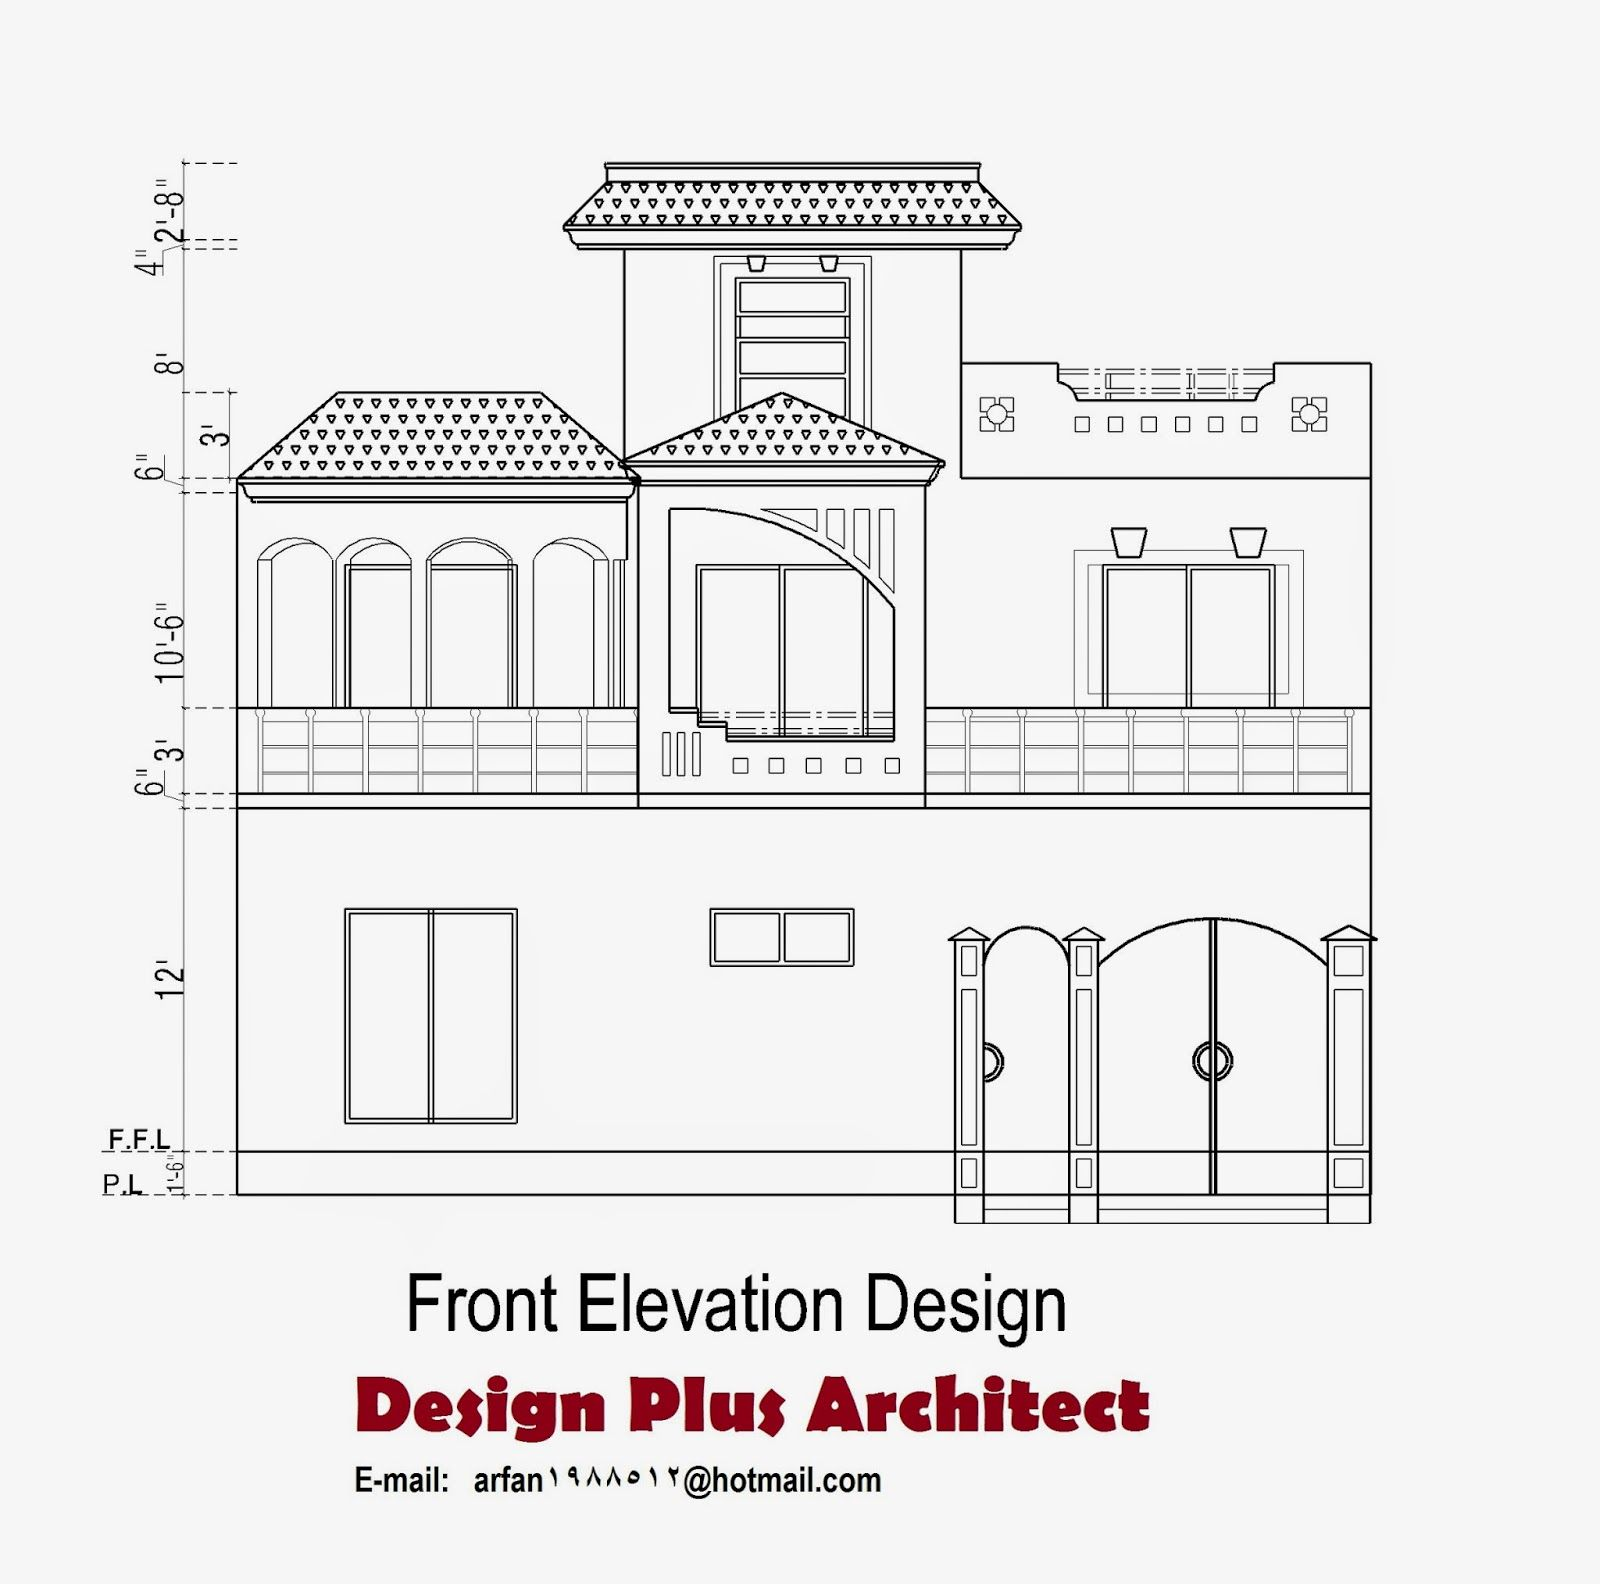 Home Plans In Pakistan, Home 2d Plan, House Plans In Pakistan, House Plans